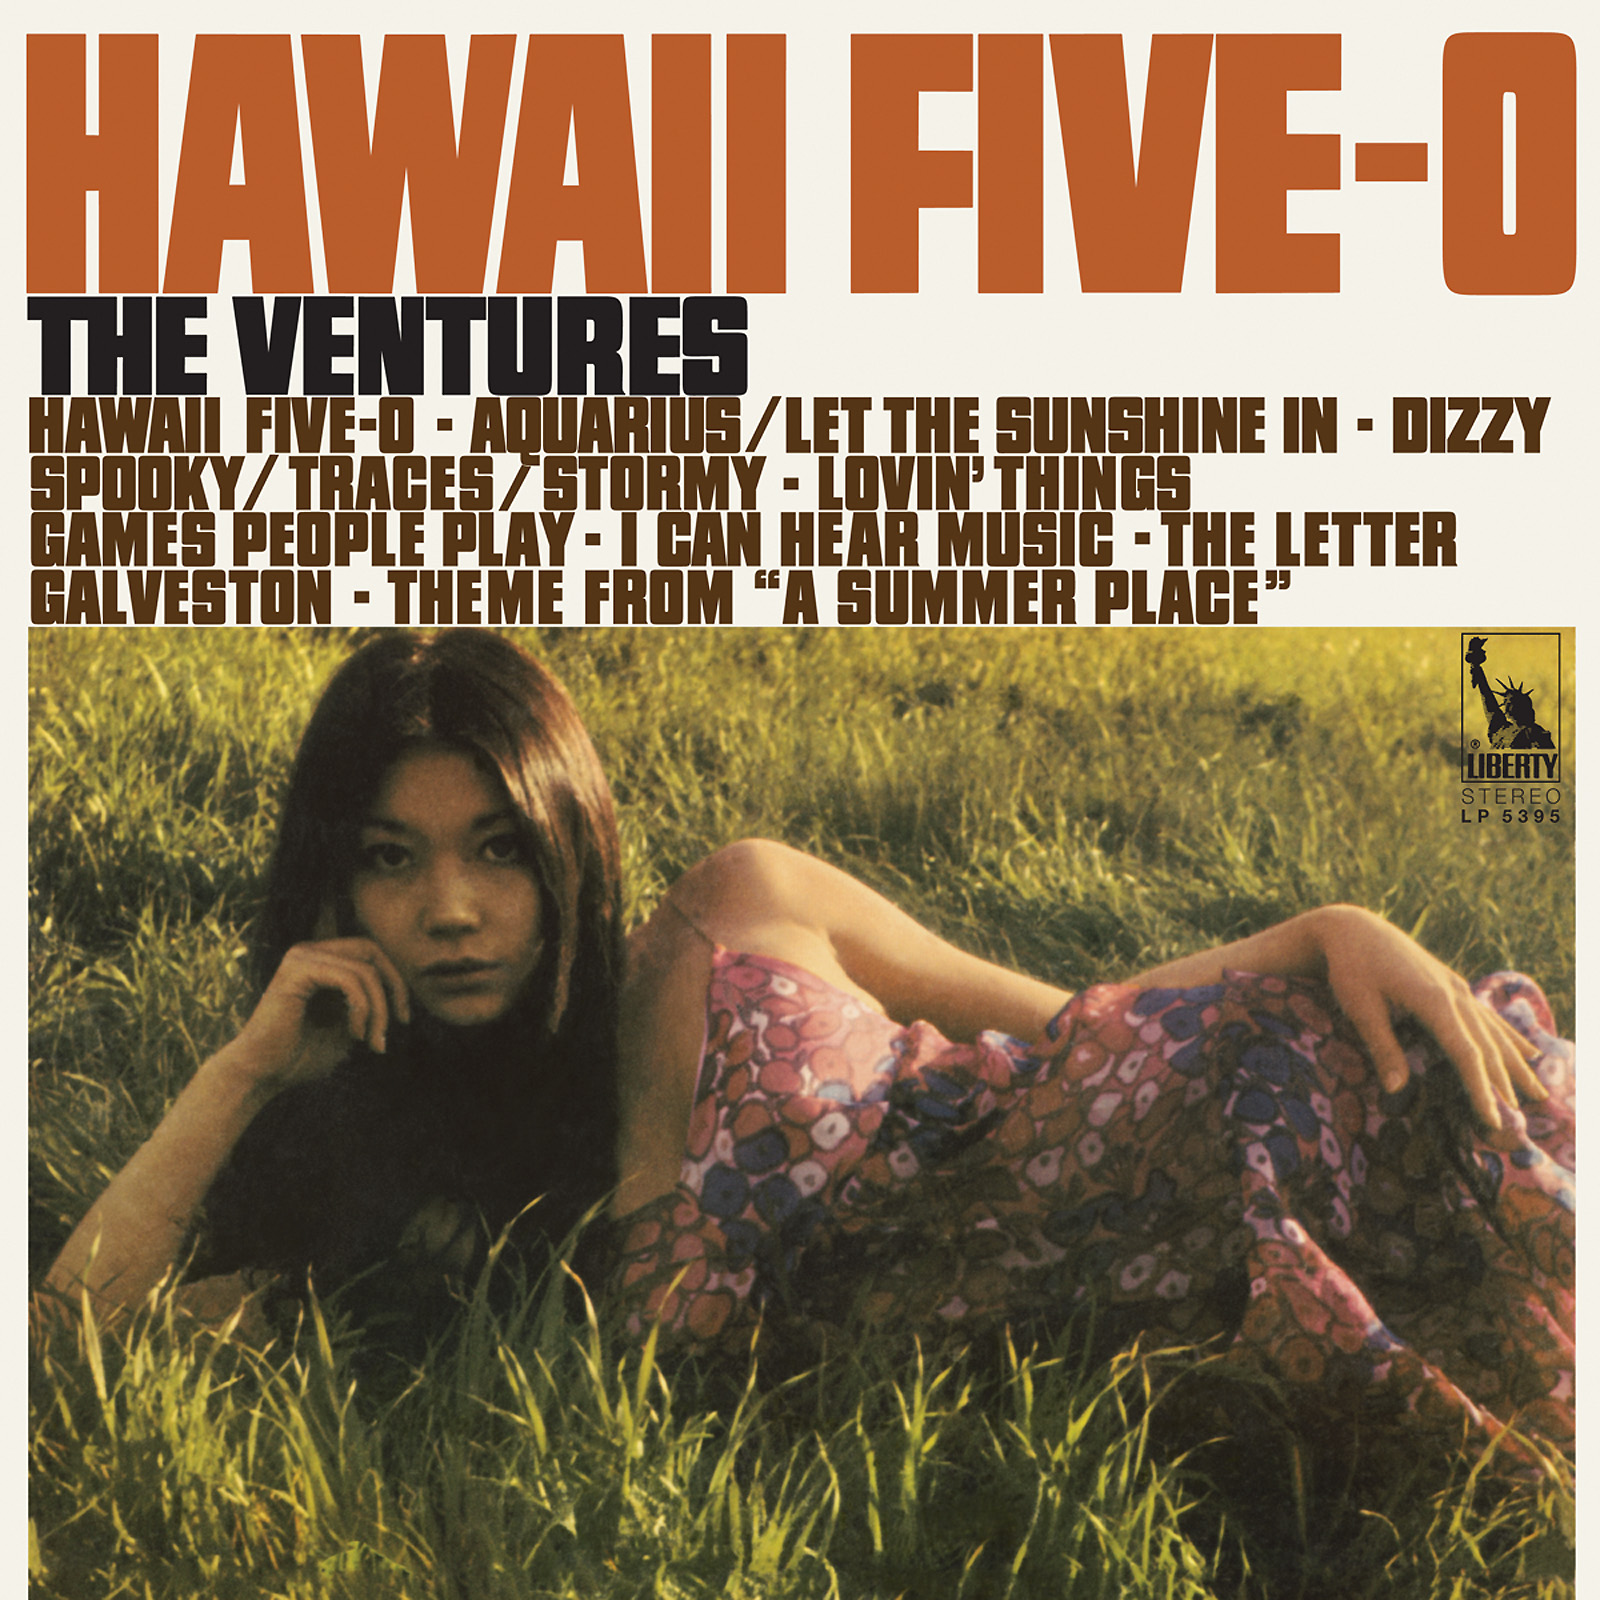 Ventures, The - Hawaii Five-O CD